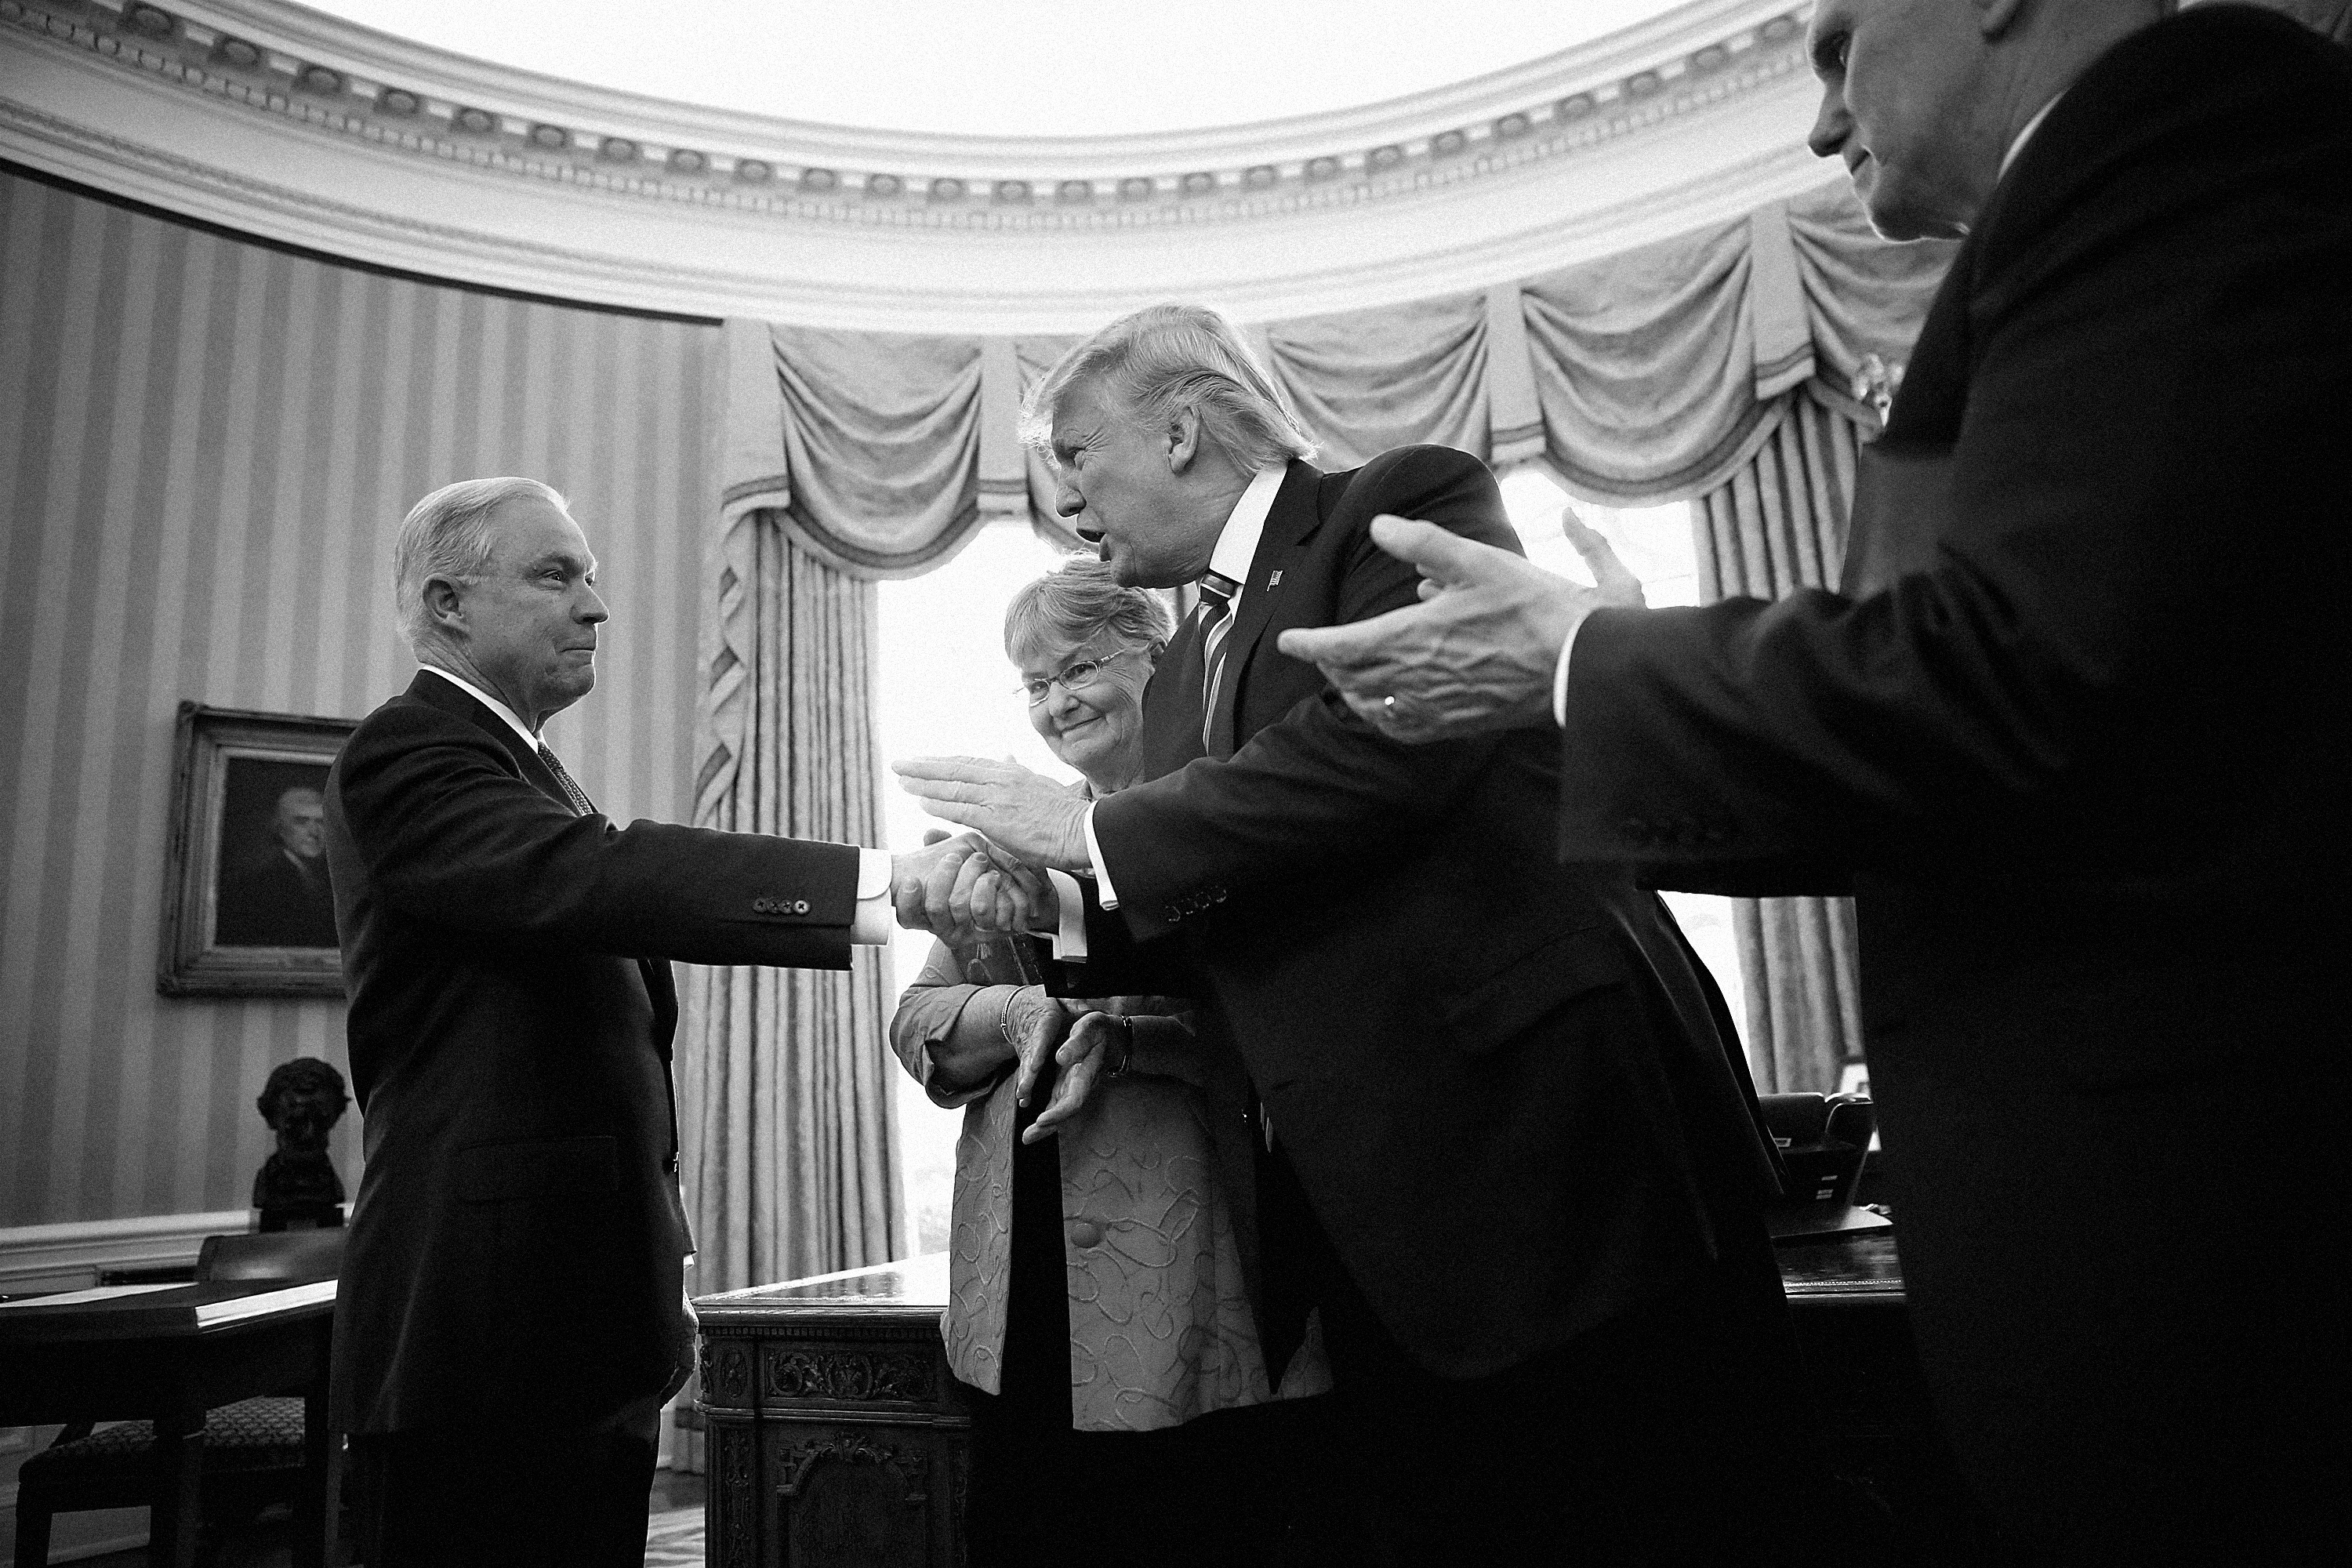 WASHINGTON, DC - FEBRUARY 09:  U.S. President Donald Trump (2nd R) shakes the hand of Jeff Sessions after Sessions was sworn in as the new U.S. Attorney General by U.S. Vice President Mike Pence (R) in the Oval Office of the White House February 9, 2017 in Washington, DC. Trump also signed three executive orders immediately after the swearing in ceremony. Also pictured is Sessions's wife, Mary (2nd L), holding the bible.